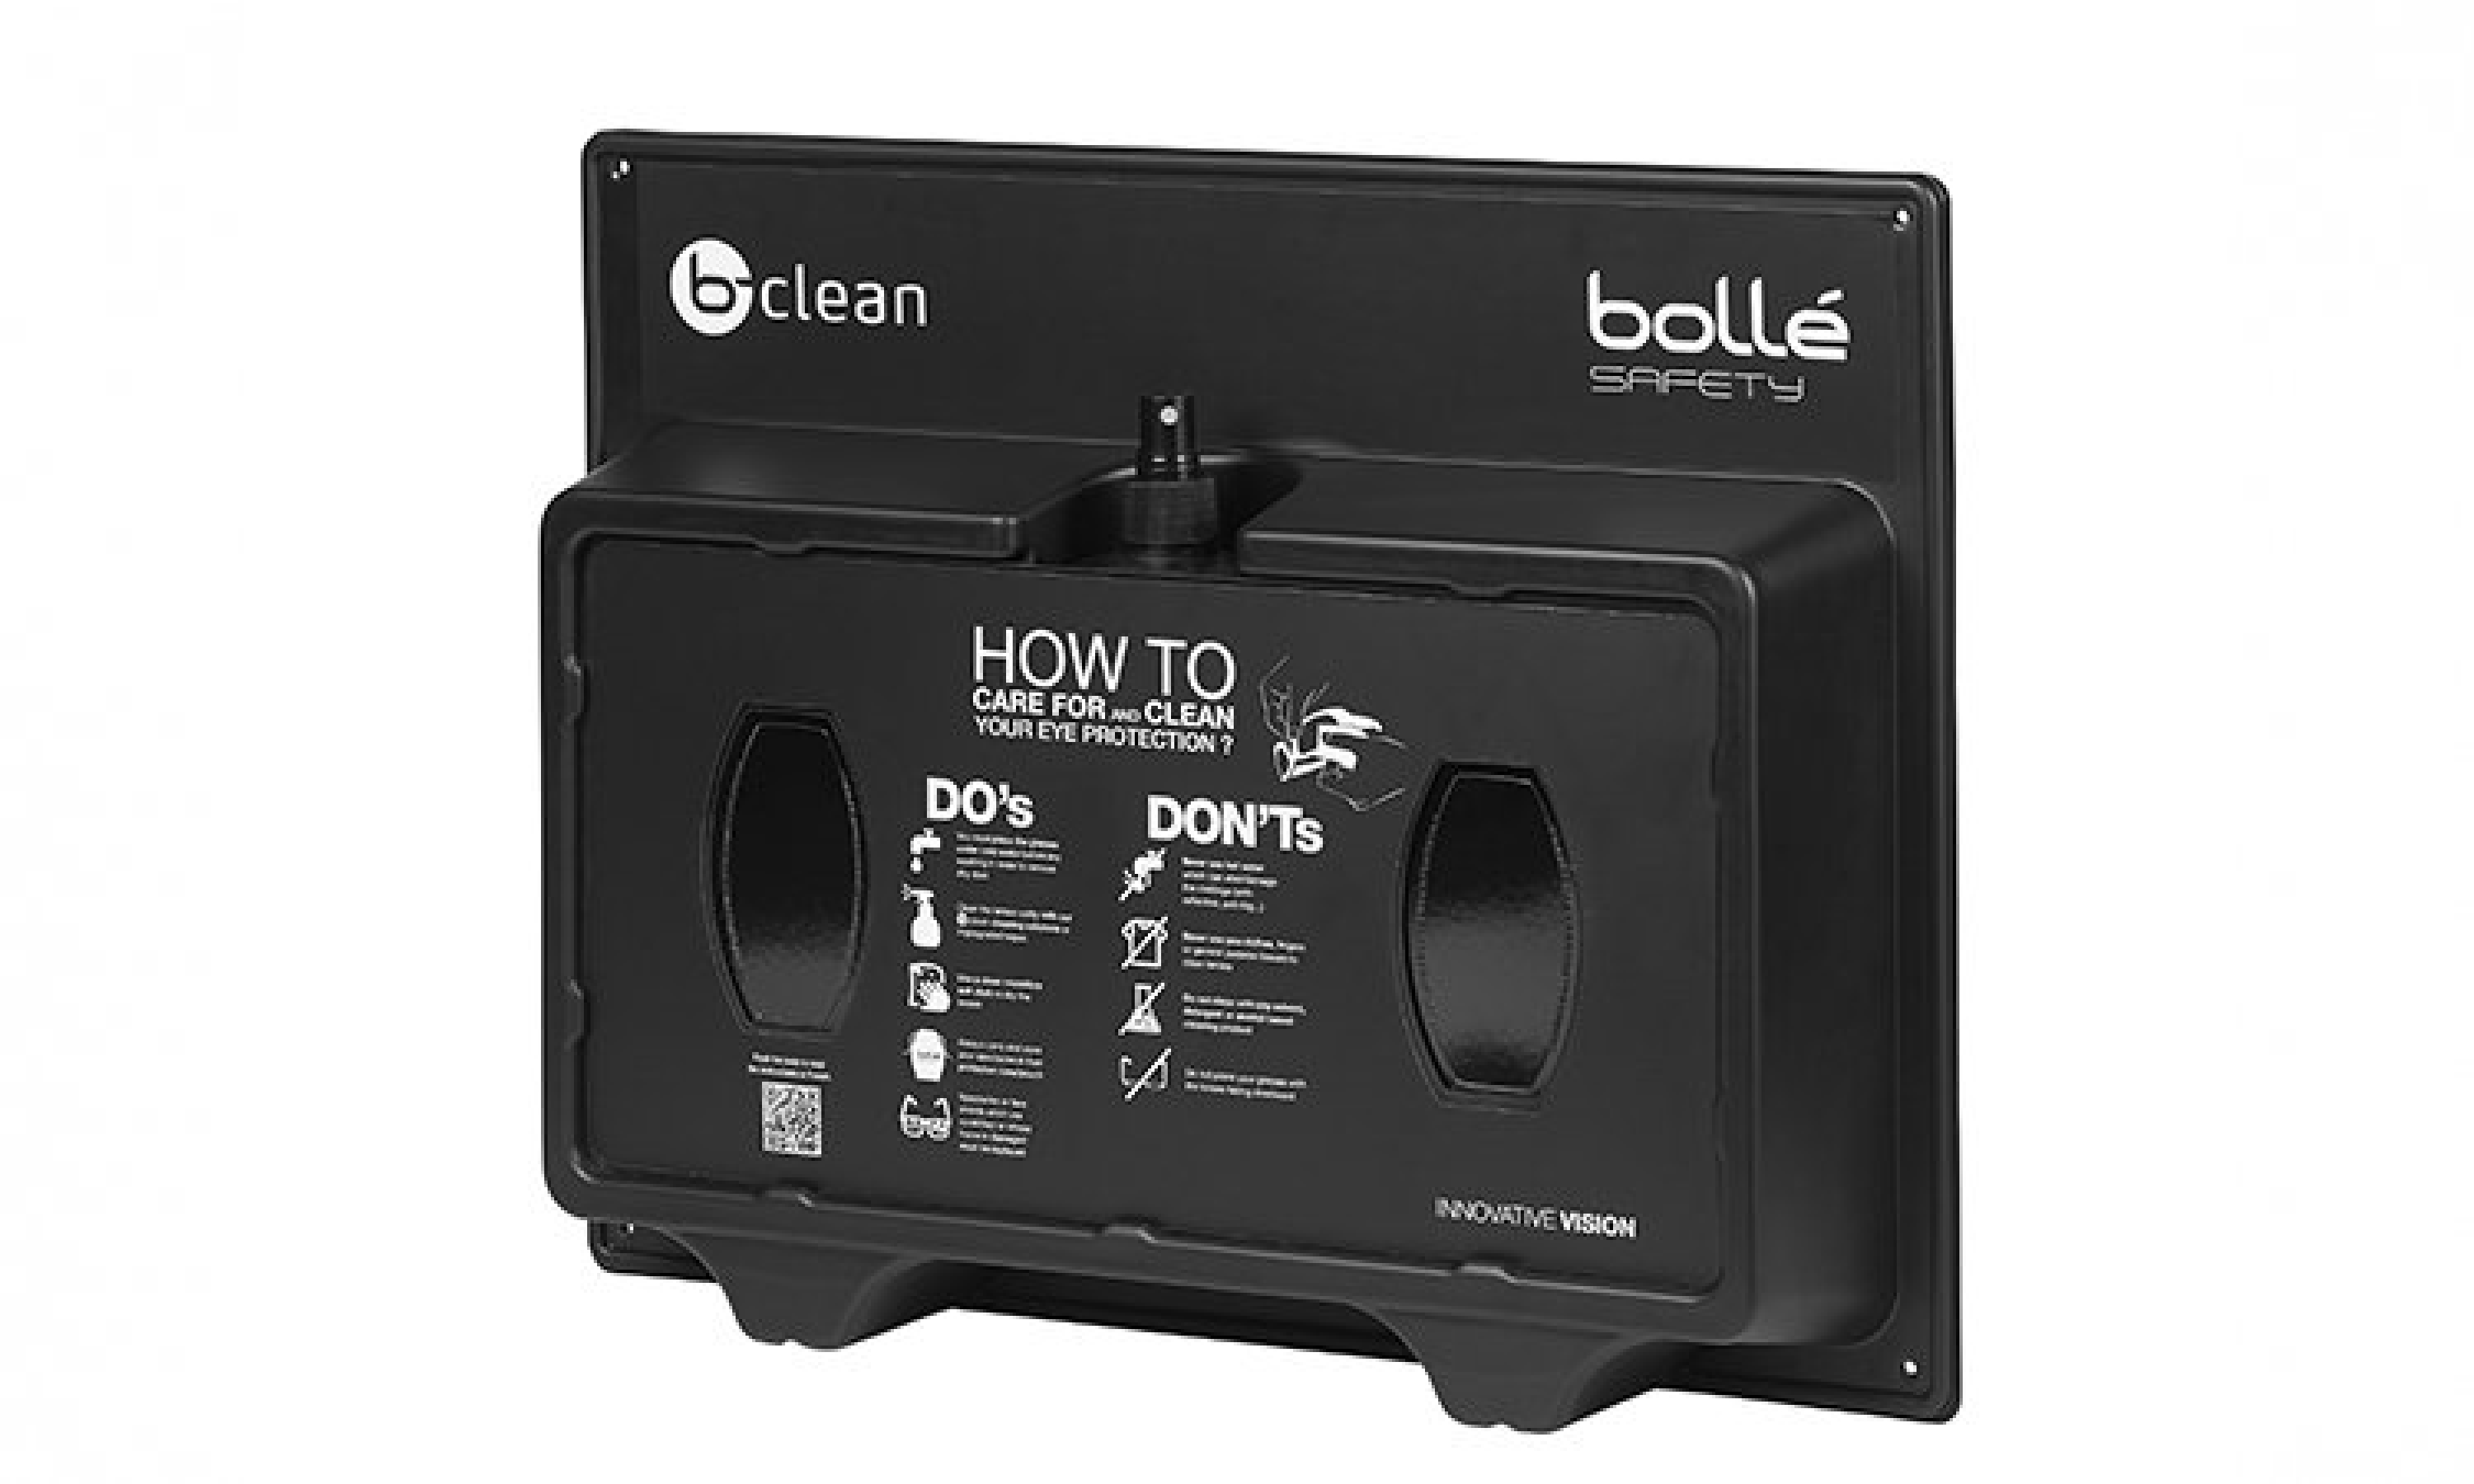 BOLLE SPEC CLEANING STATION PLASTIC